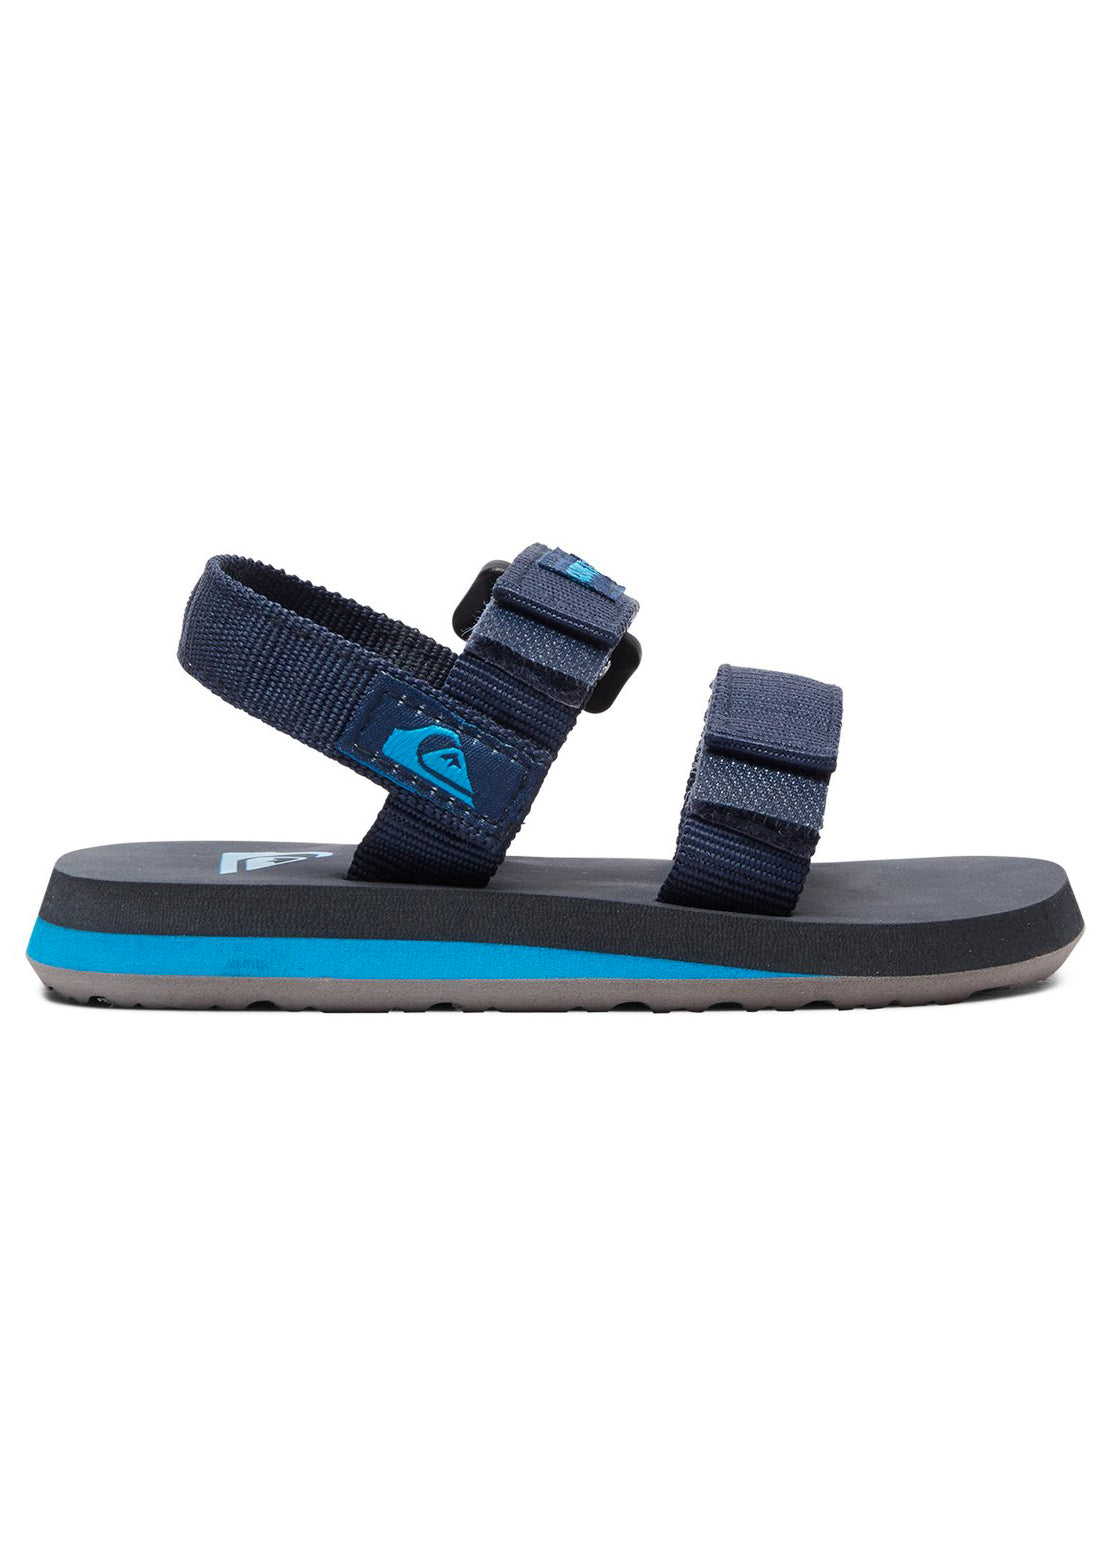 Quiksilver Junior Toddler Monkey Caged Sandals Blue/Grey/Blue